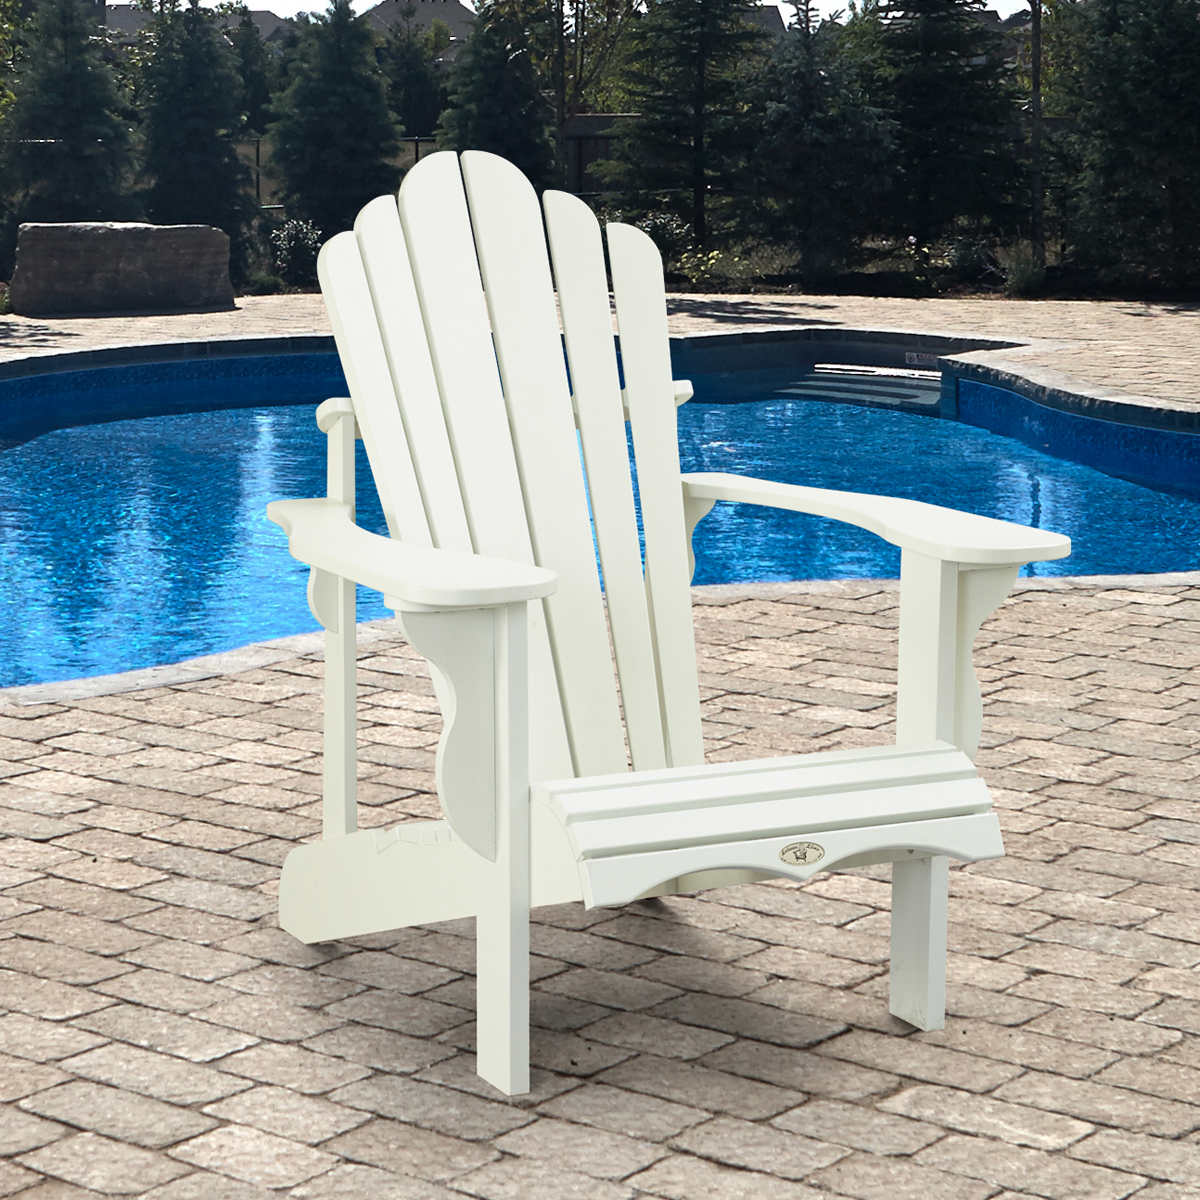 d371f43a48 Adirondack Chair by Leisure Line